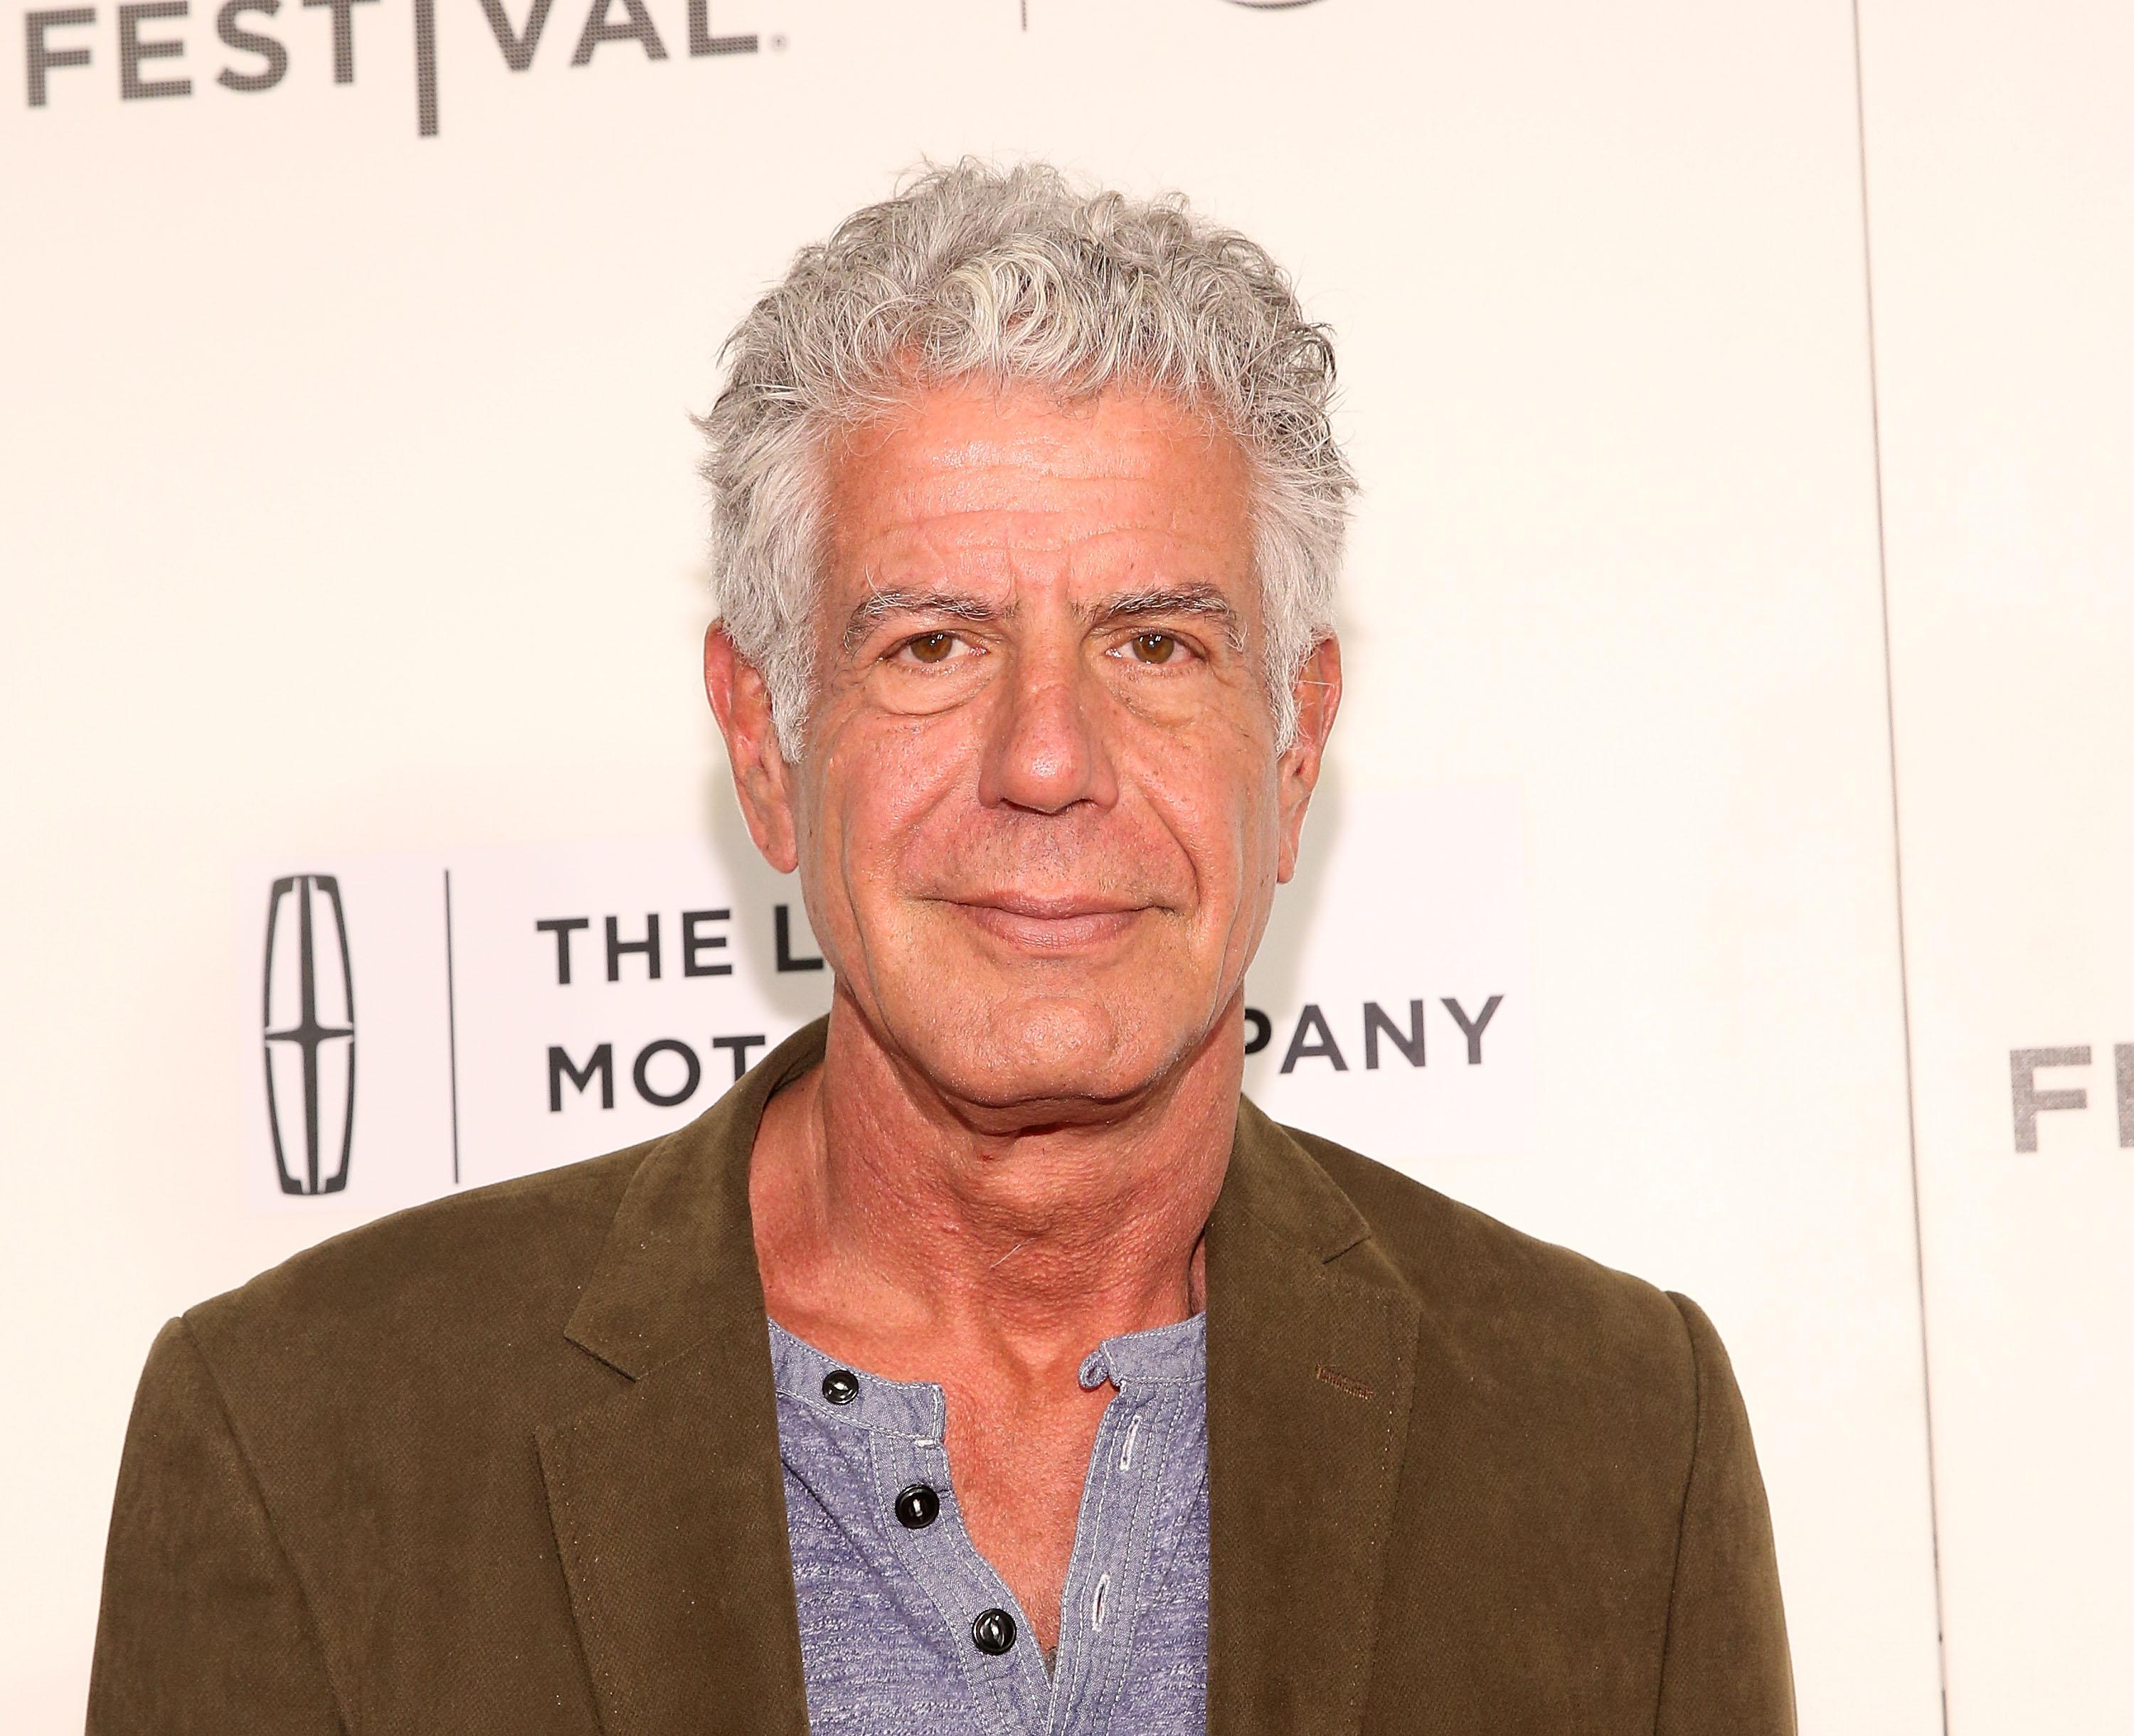 NEW YORK, NY - APRIL 22:  Anthony Bourdain attends 'WASTED! The Story of Food Waste' Premiere during 2017 Tribeca Film Festival at BMCC Tribeca PAC on April 22, 2017 in New York City.  (Photo by Robin Marchant/Getty Images for Tribeca Film Festival)